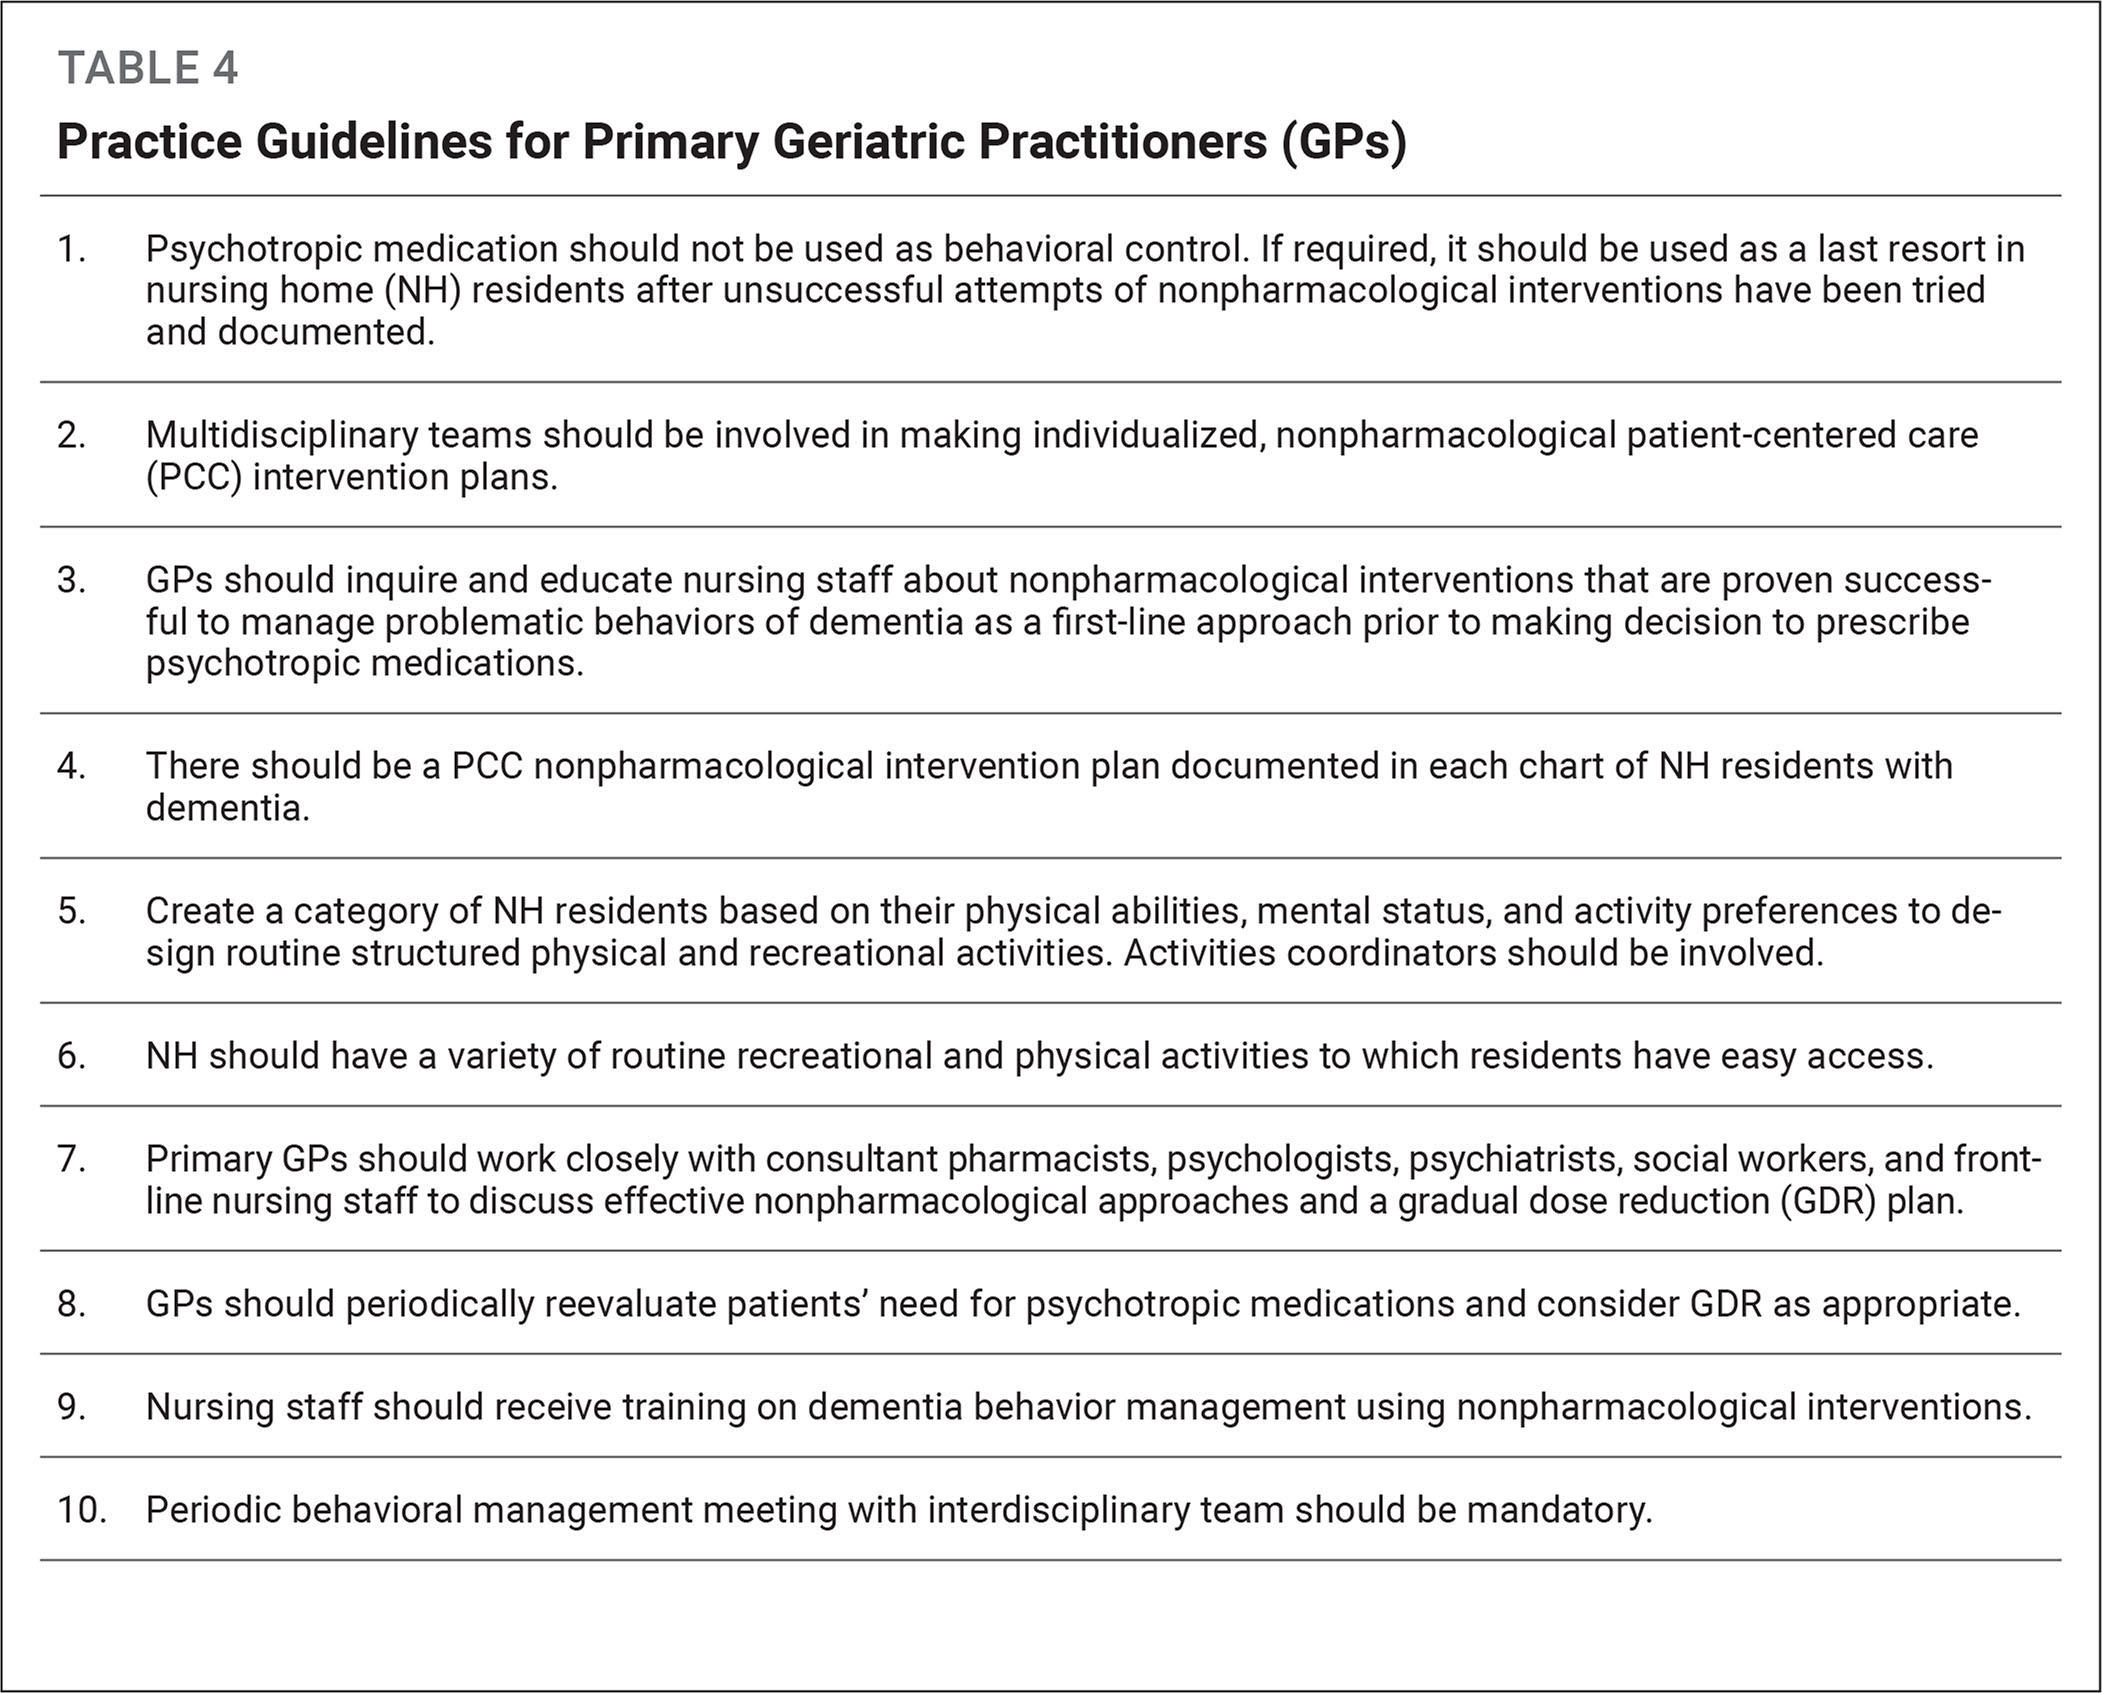 Practice Guidelines for Primary Geriatric Practitioners (GPs)